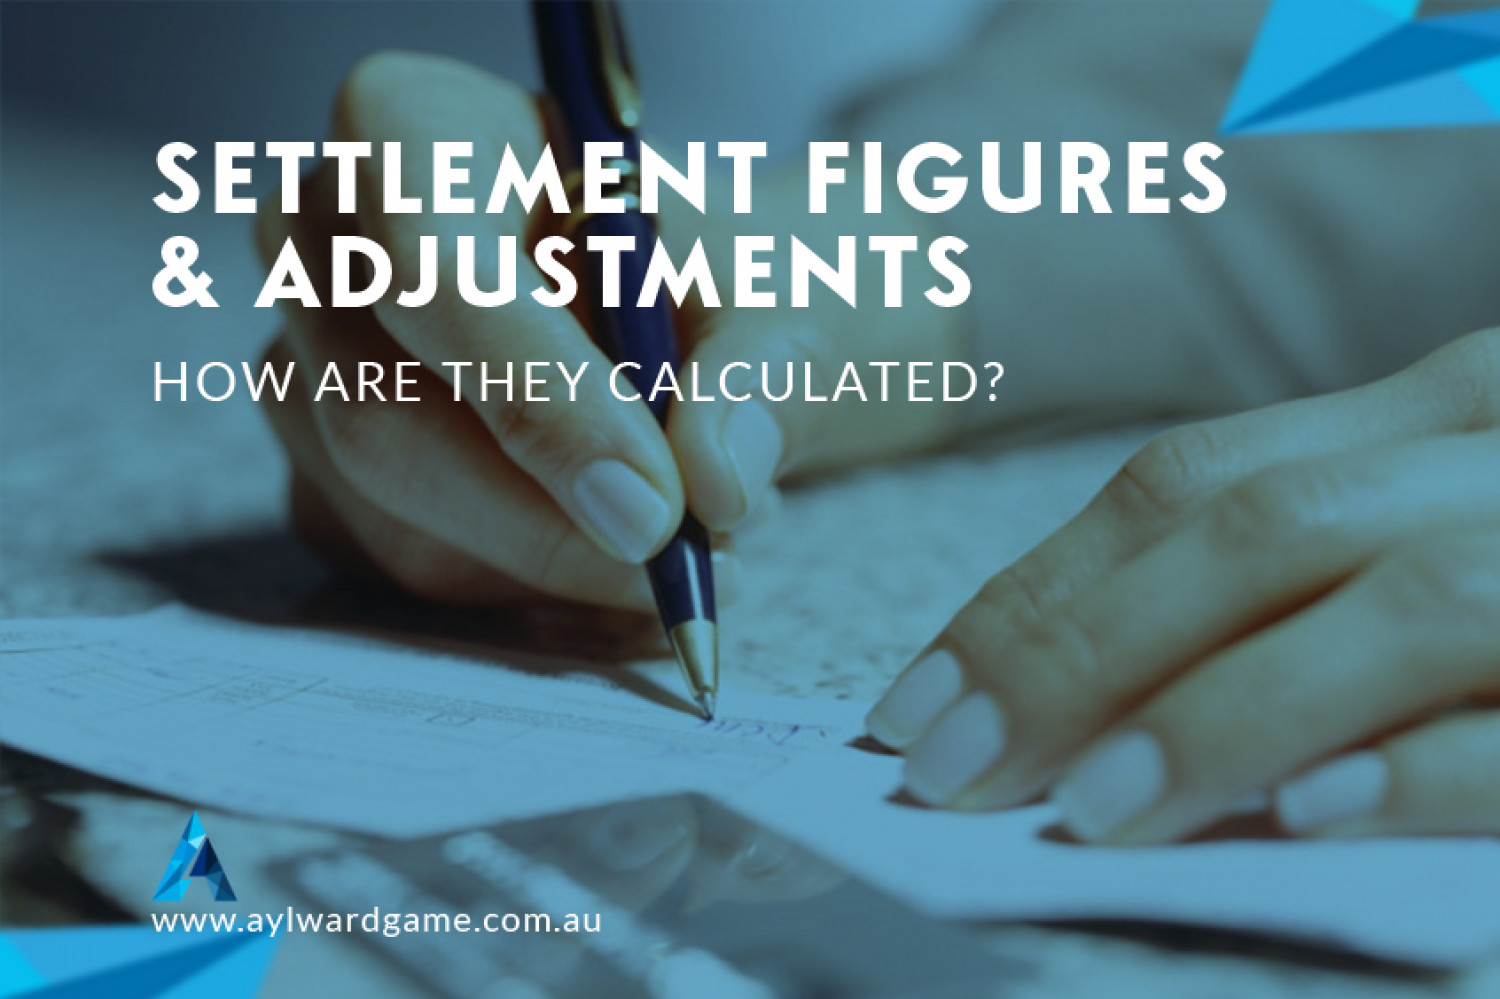 SETTLEMENT FIGURES & ADJUSTMENTS – HOW ARE THEY CALCULATED Infographic